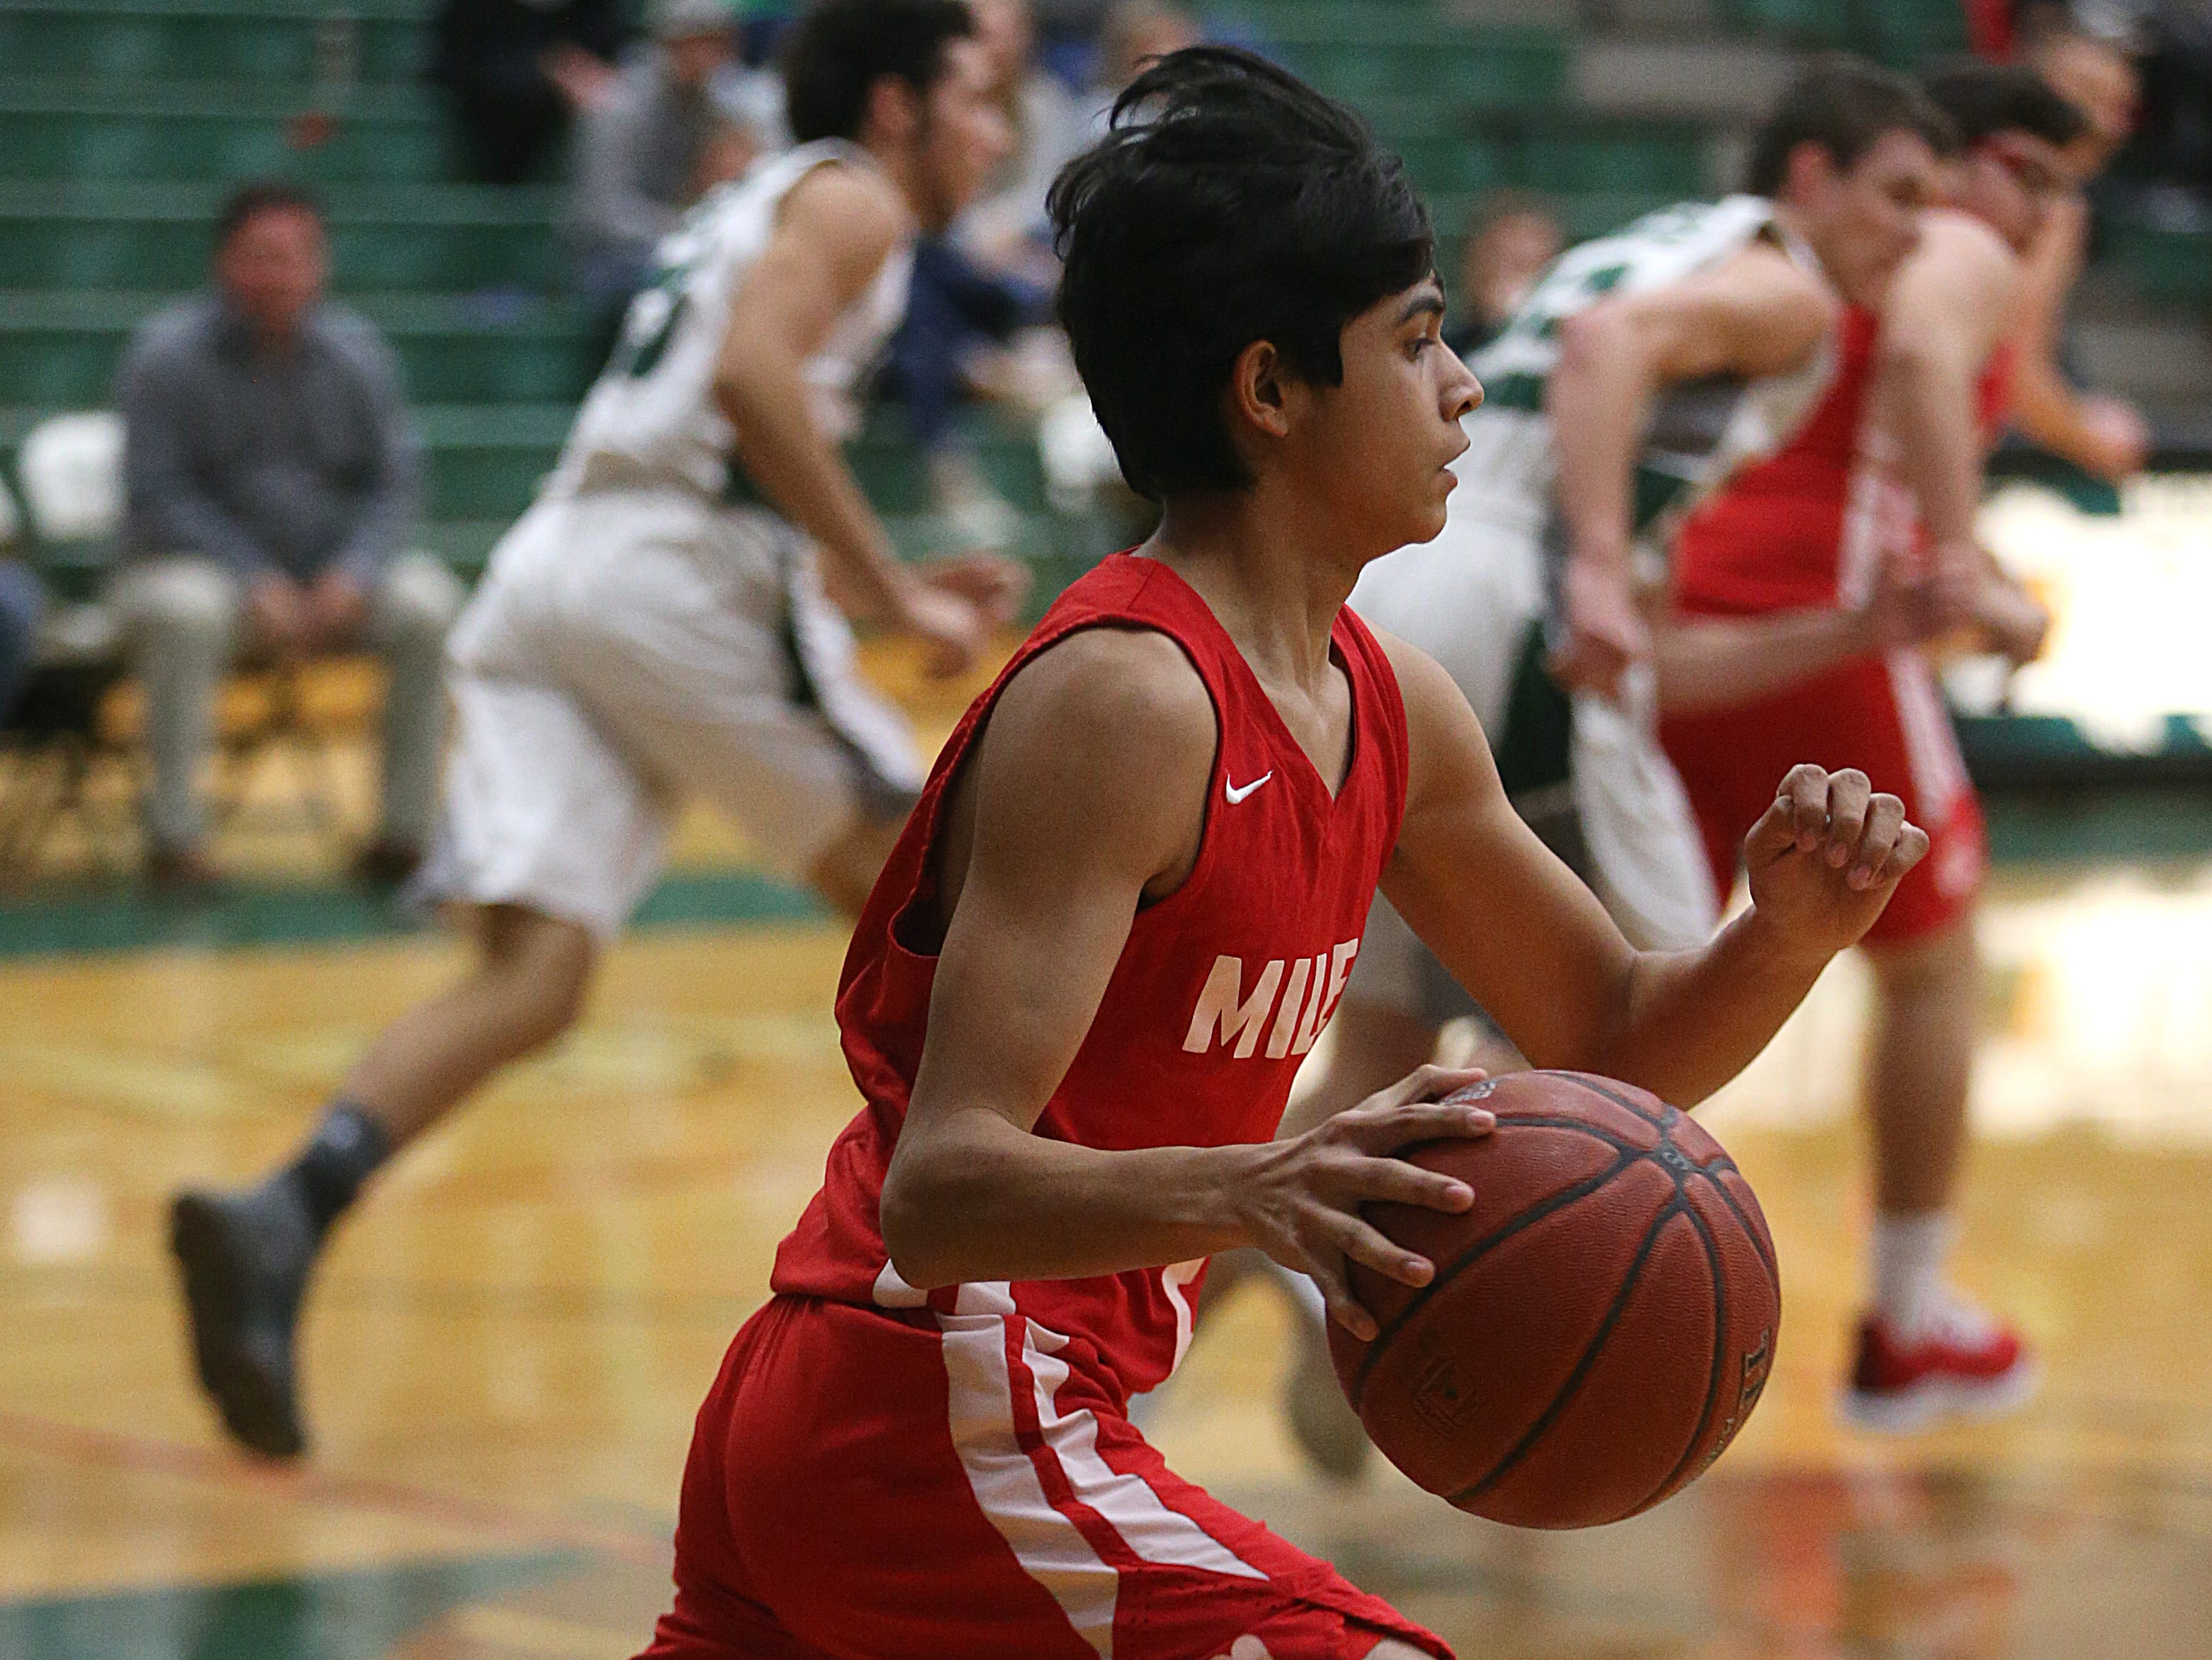 Miles' Jose Mata (#2) dribbles down court Friday, Dec. 14, 2018 during their game in Grape Creek. Miles won 50 to 38.